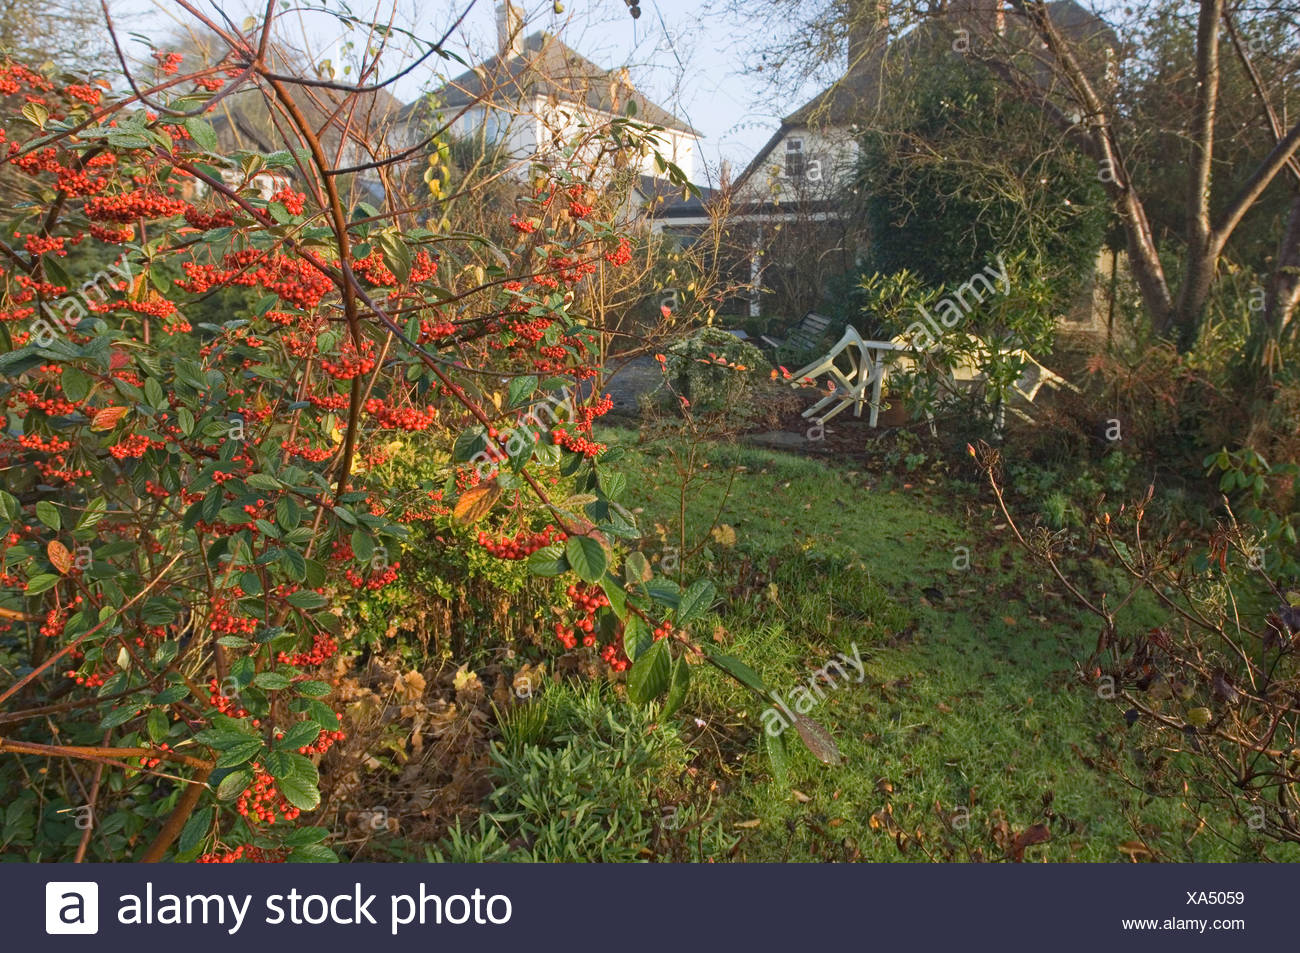 Suburban Garden Autumn Stock Photos & Suburban Garden Autumn Stock ...